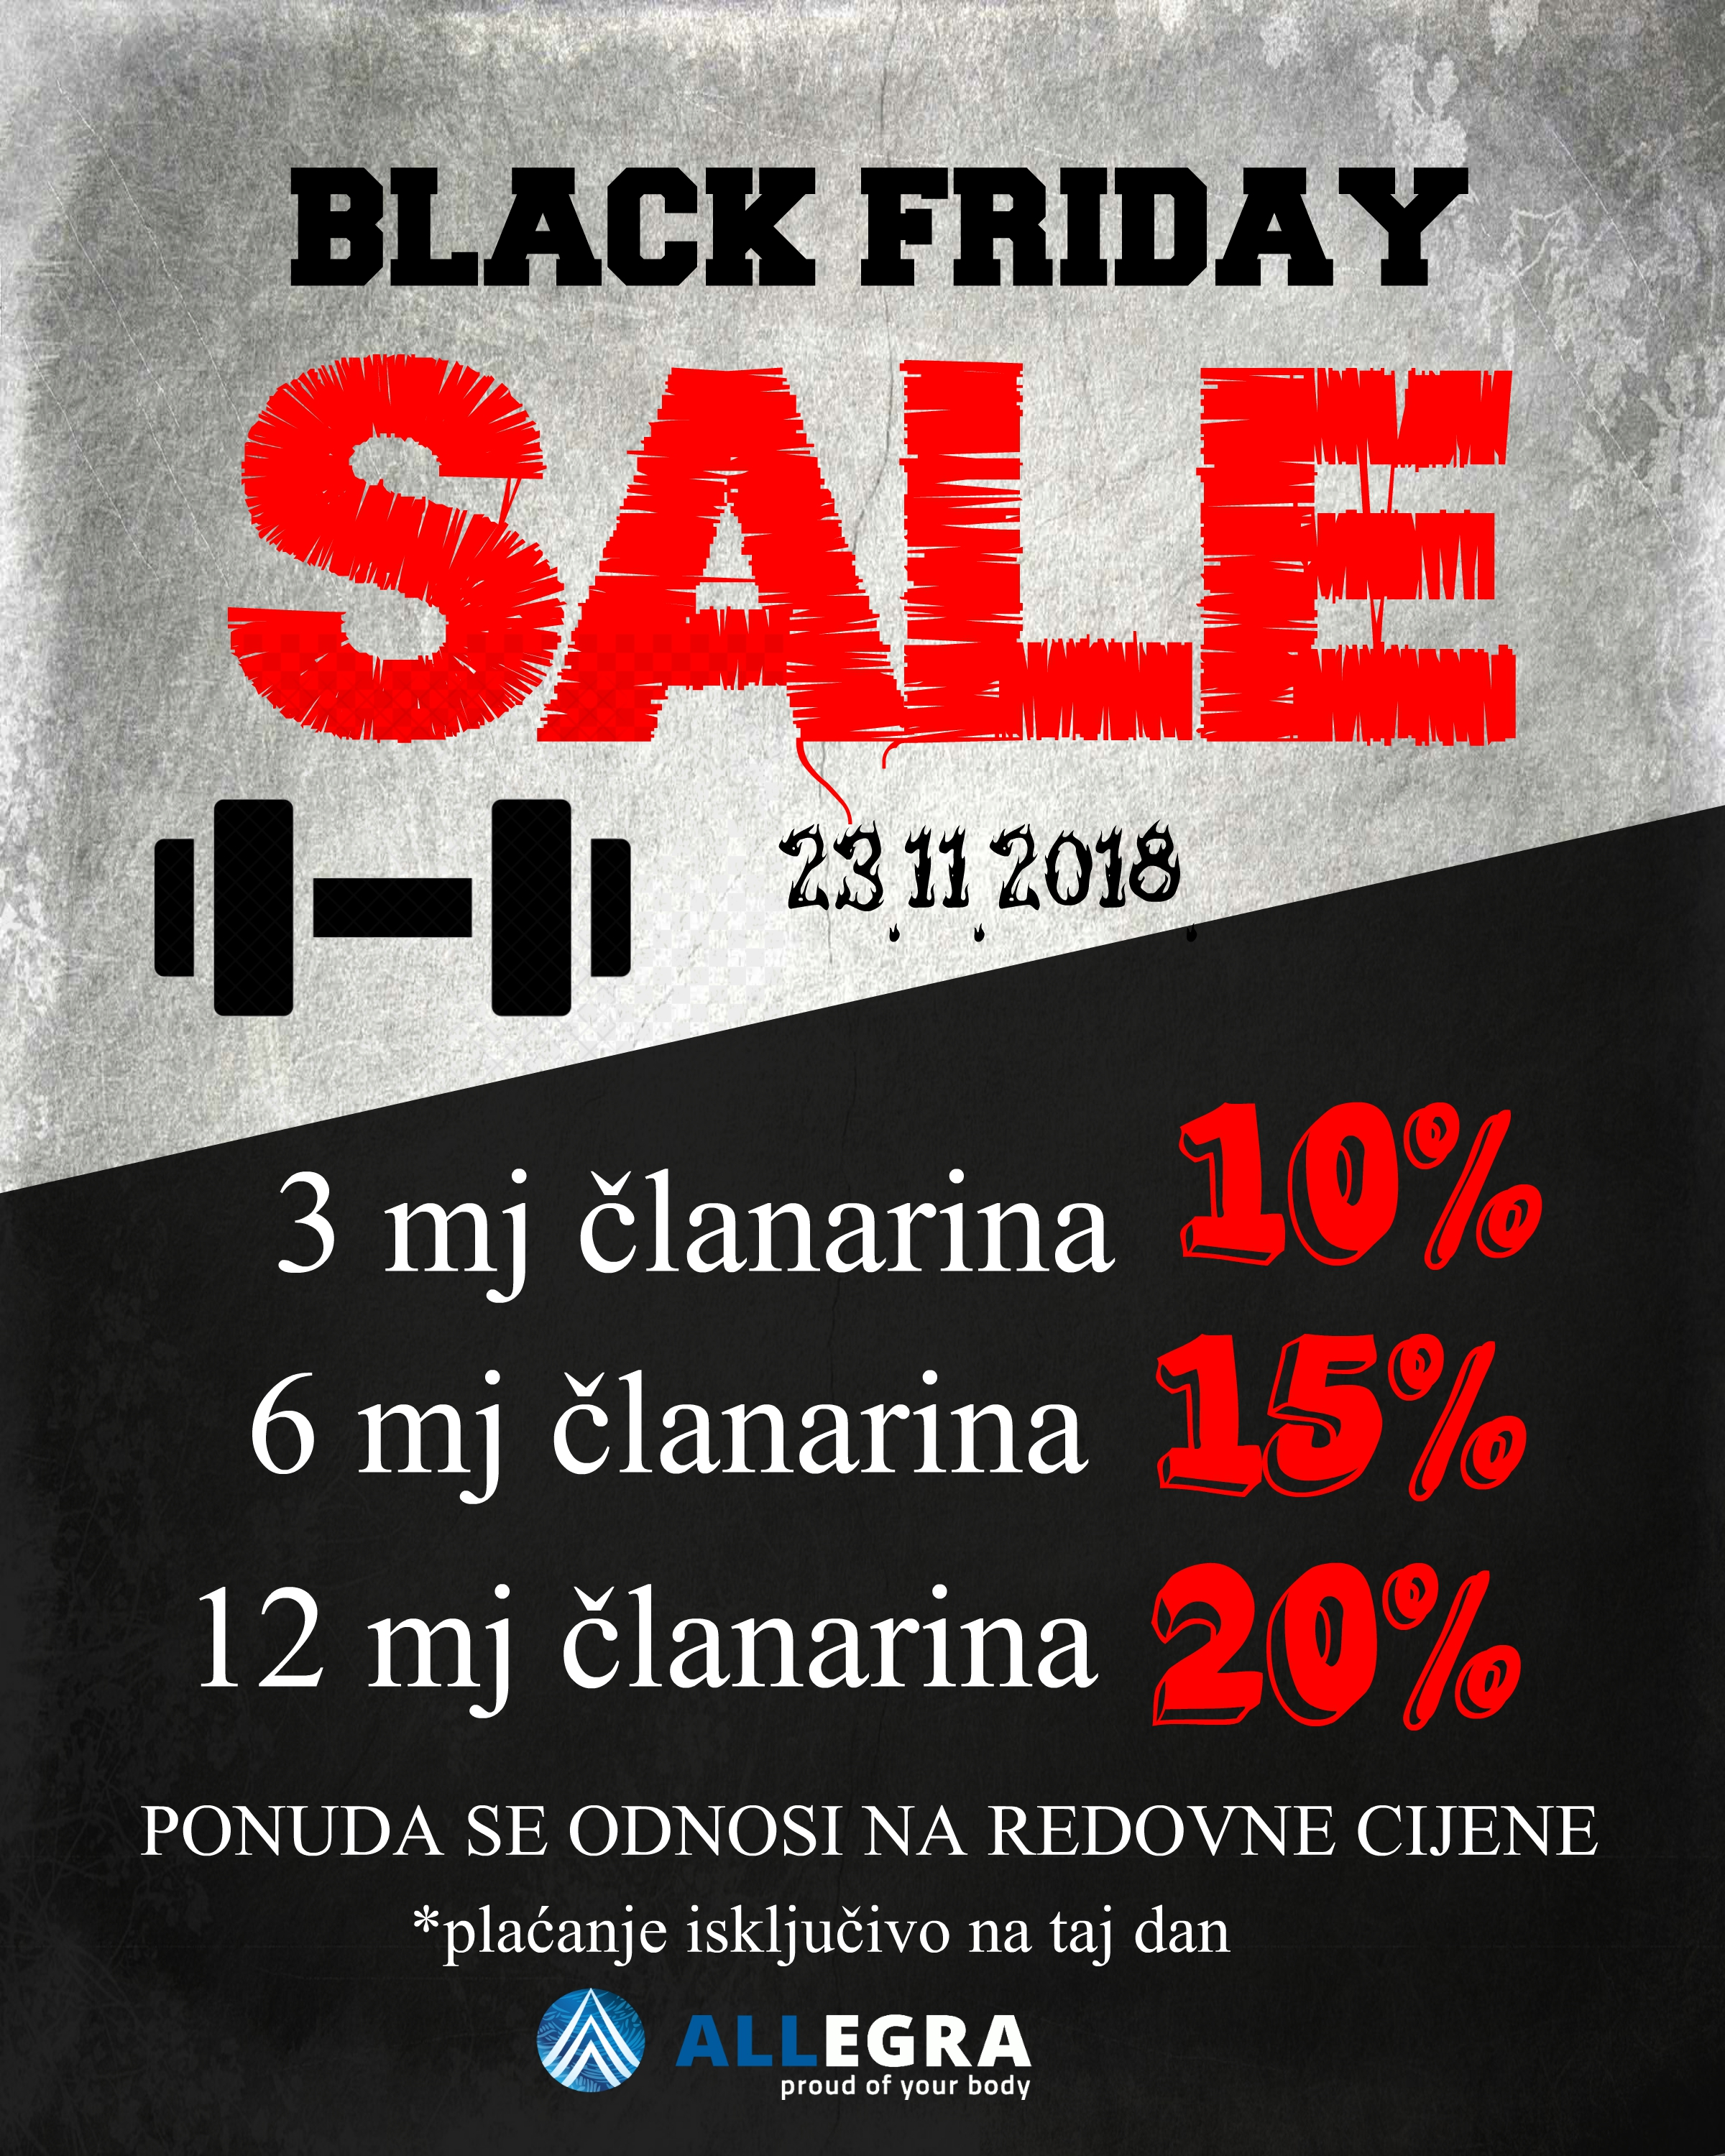 BLACK FRIDAY PLAKAT